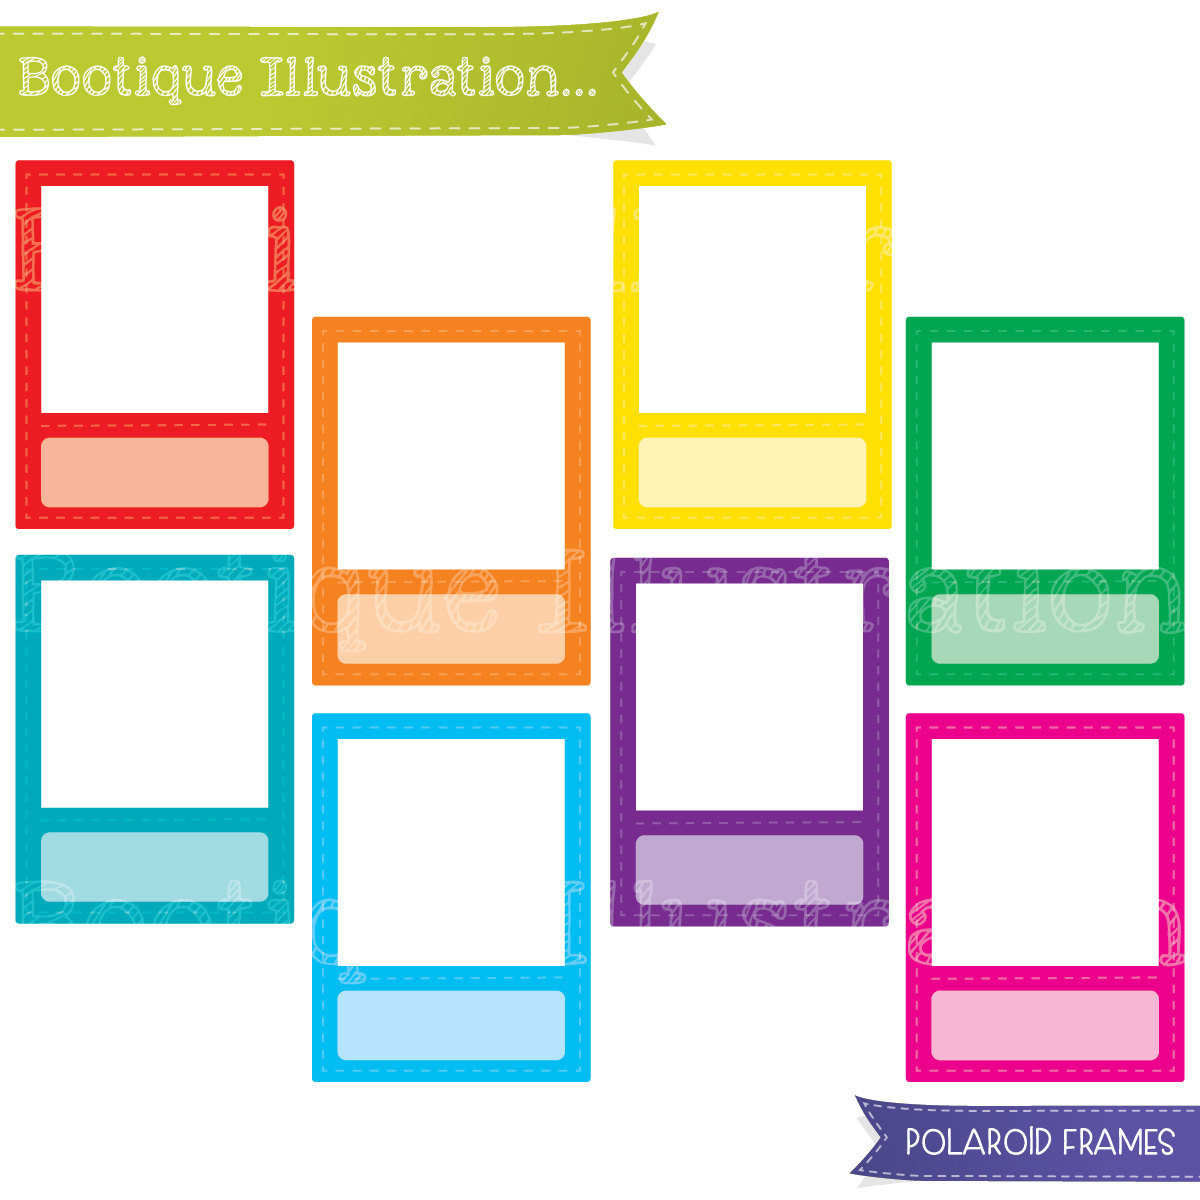 1200x1200 Polaroid Clip Art Boo Tique Illustration Clipart